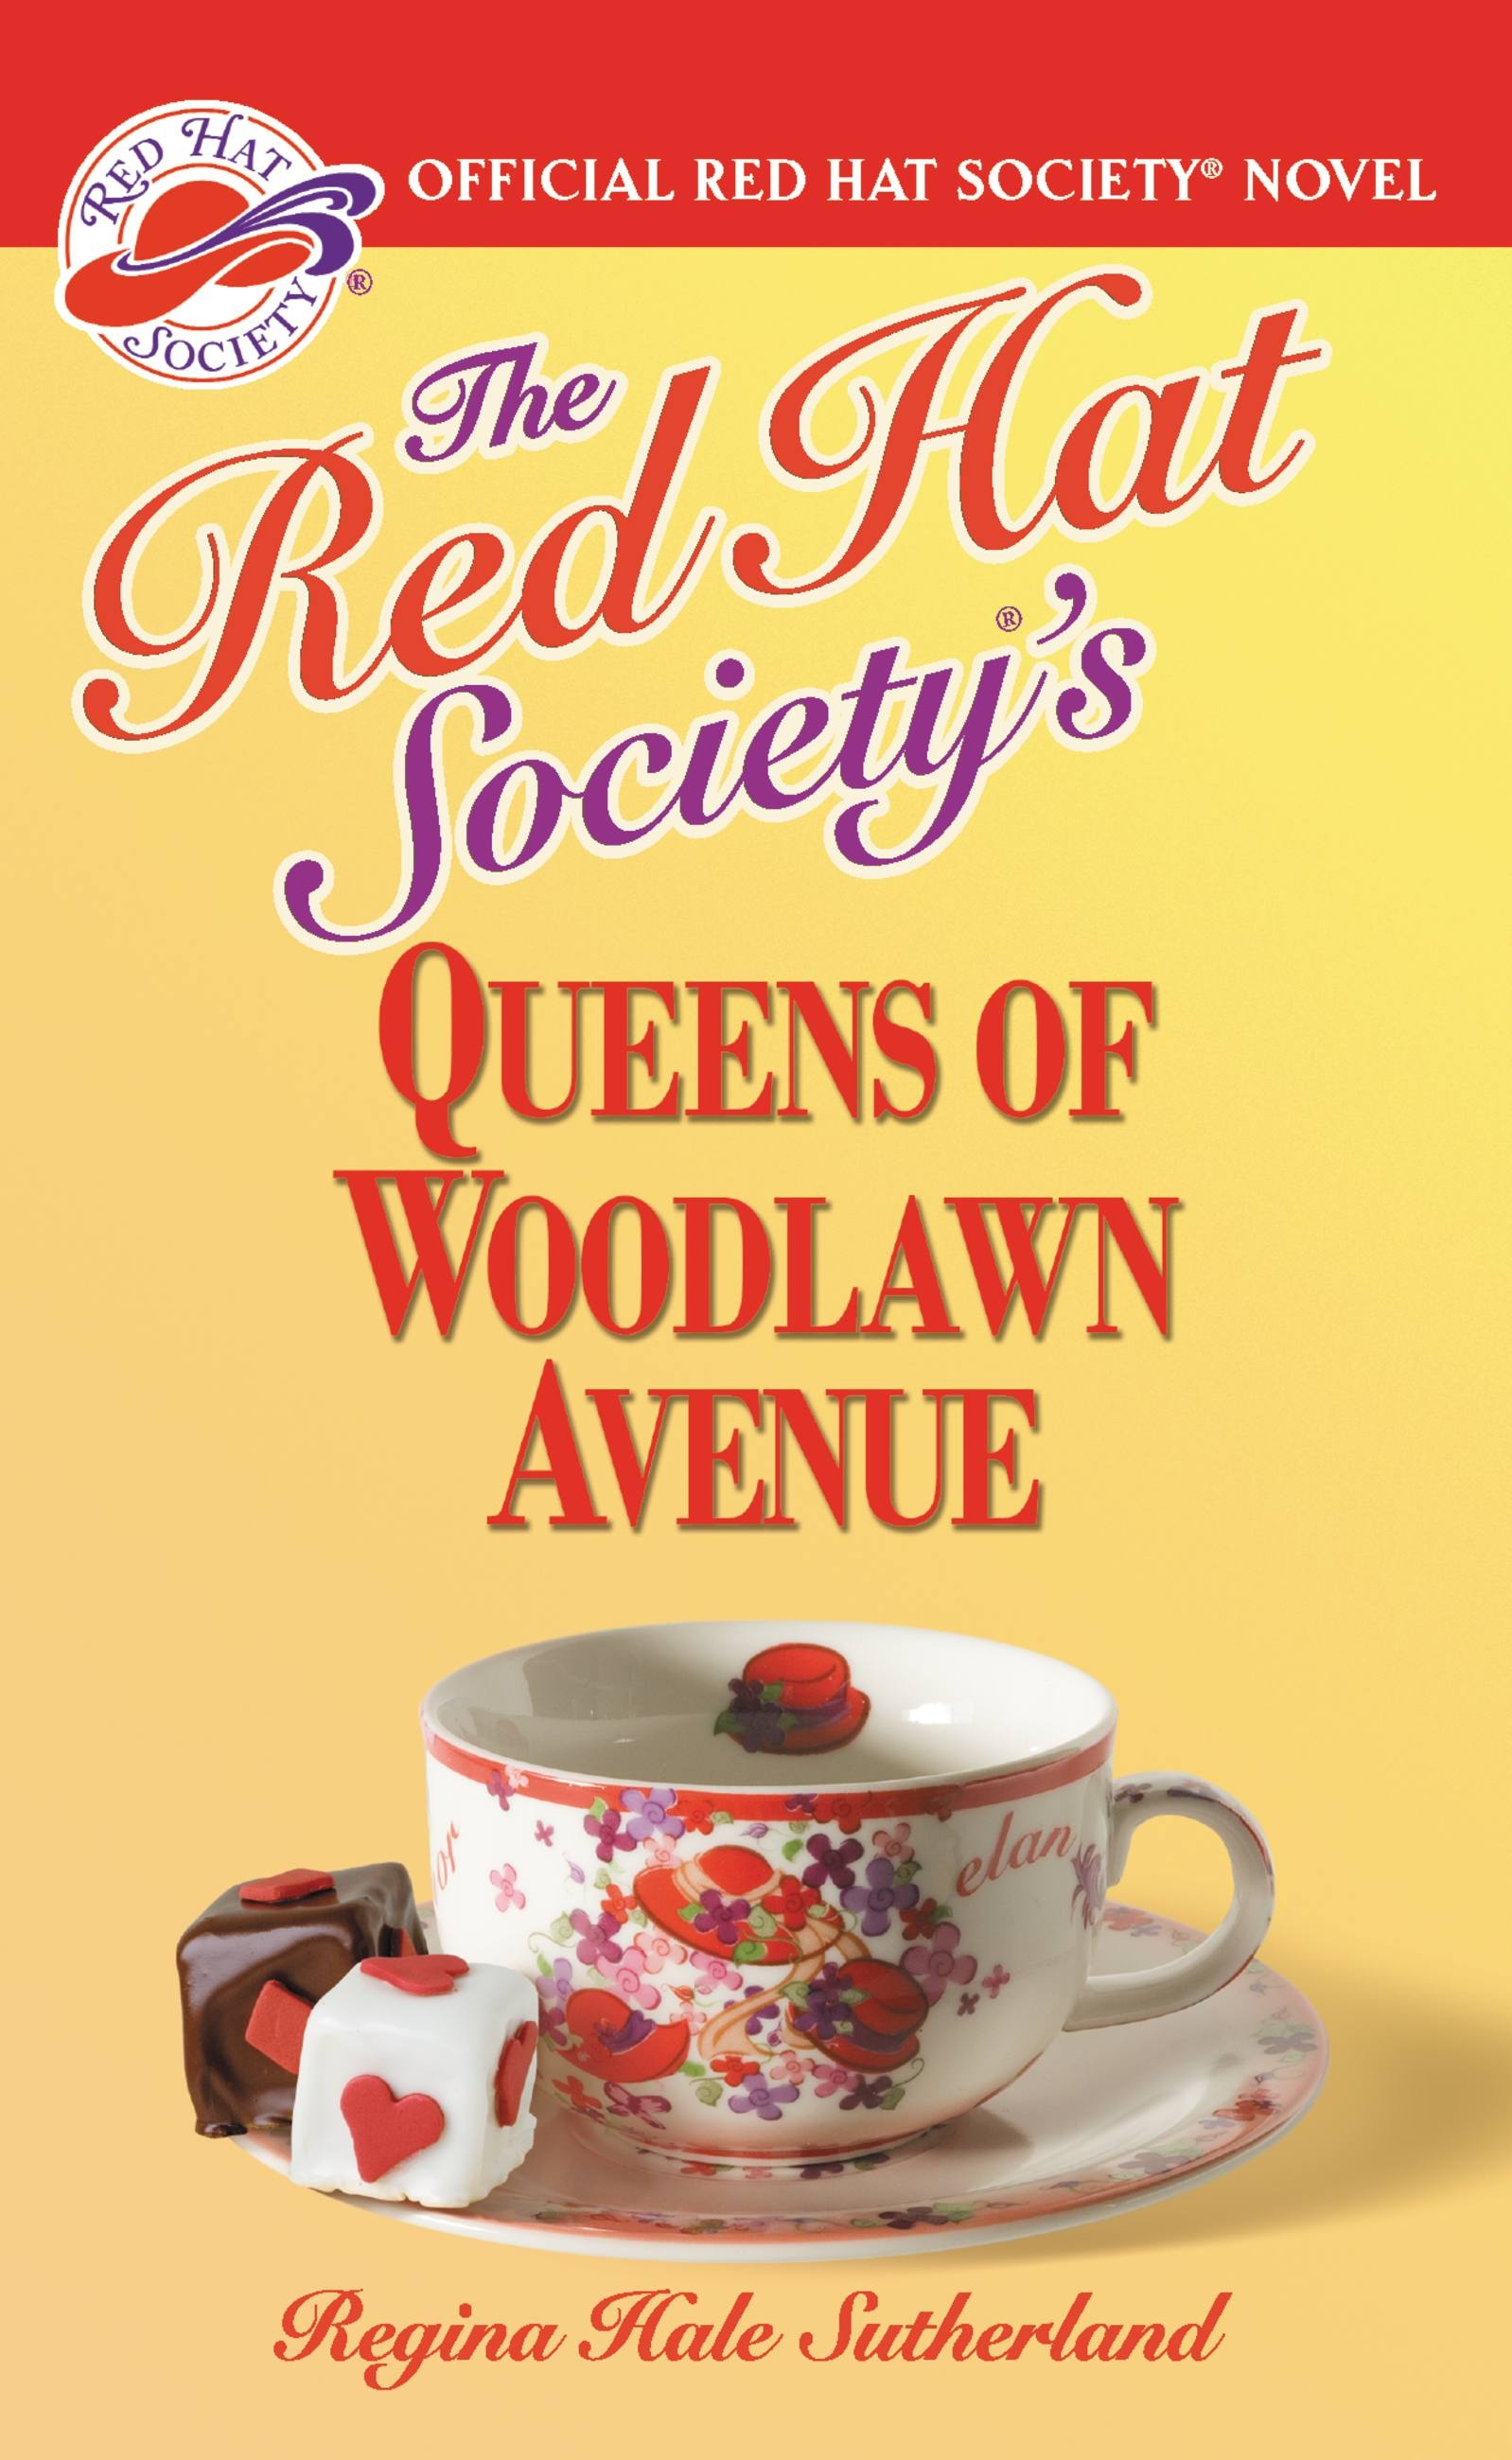 The Red Hat Society(R)'s Queens of Woodlawn Avenue